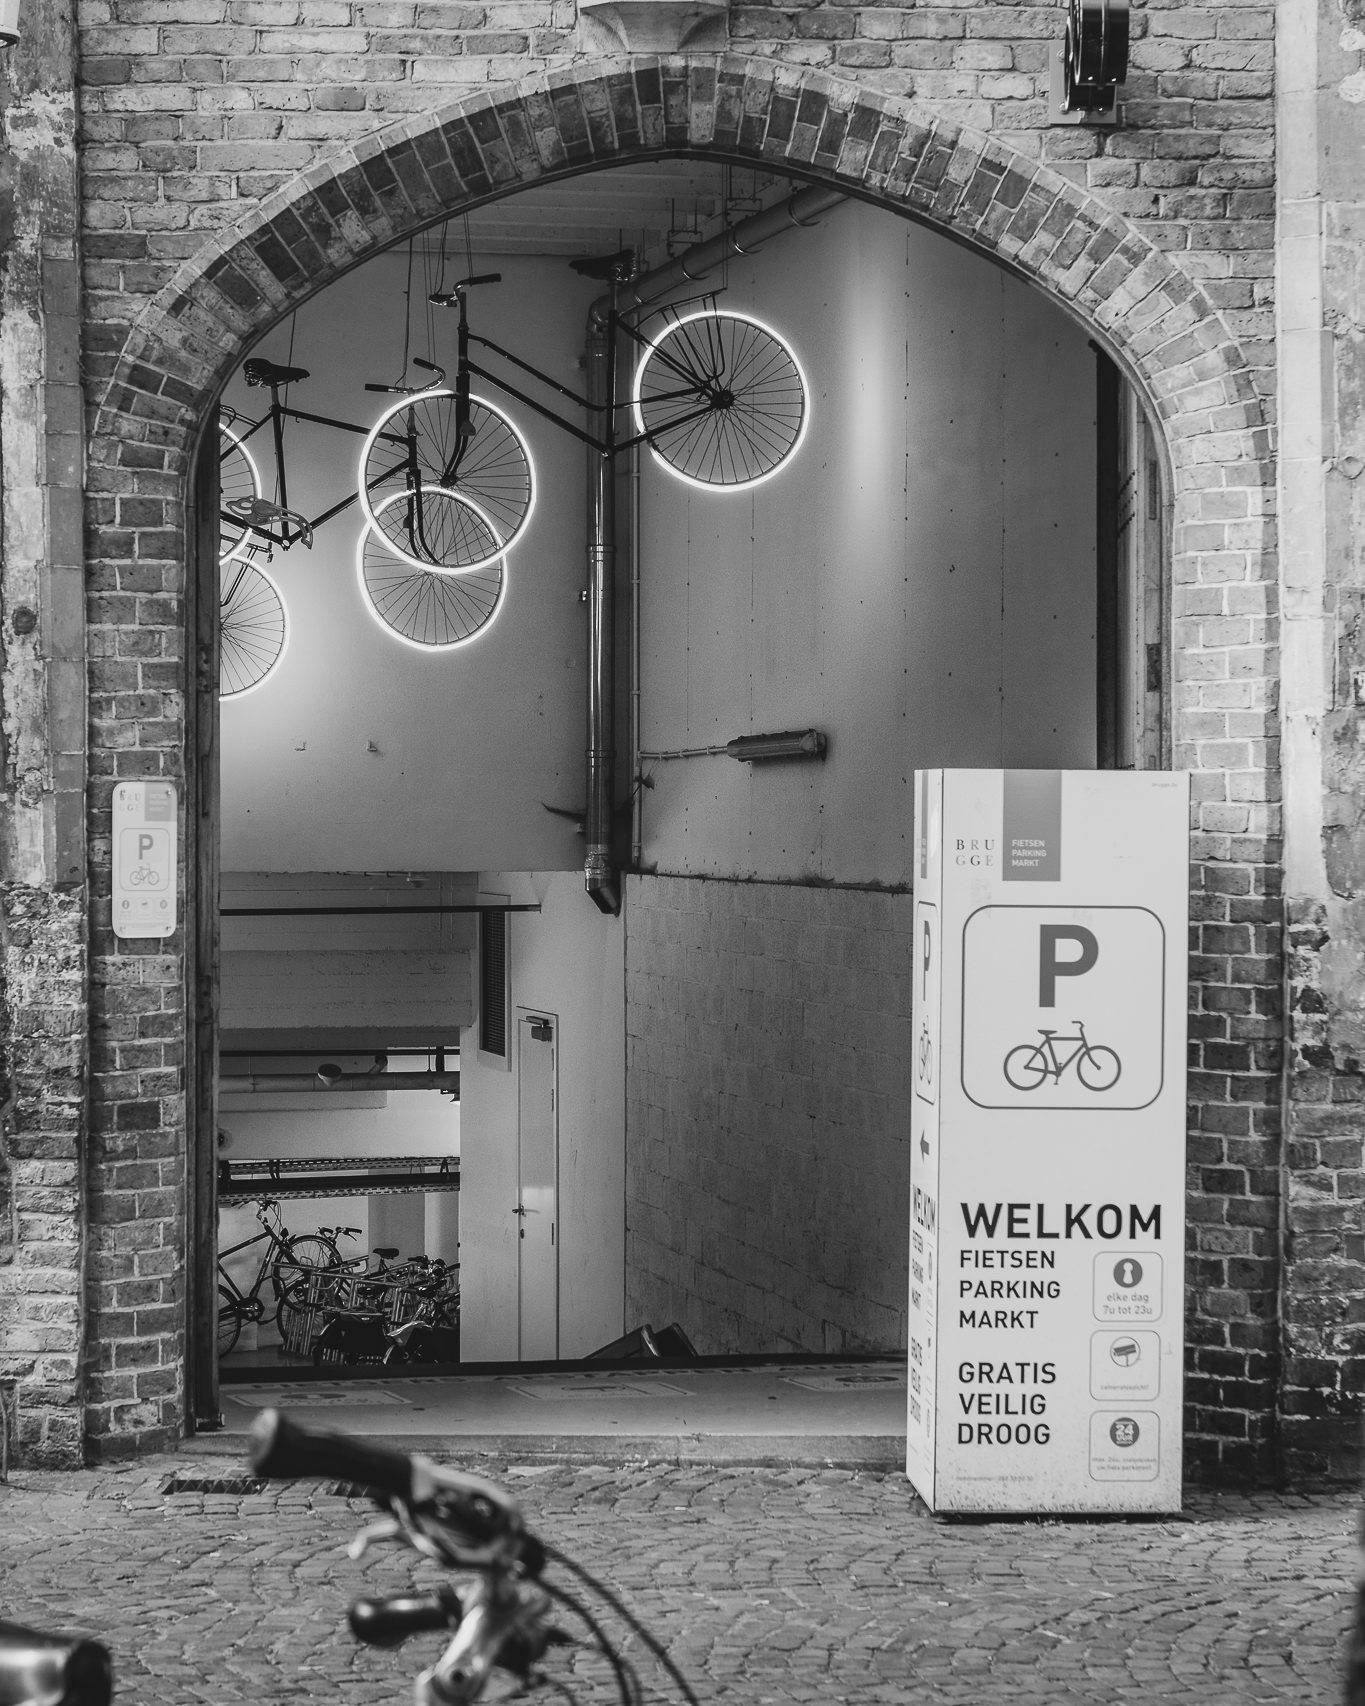 A cool bike garage. Or a ghost basement, who knows.